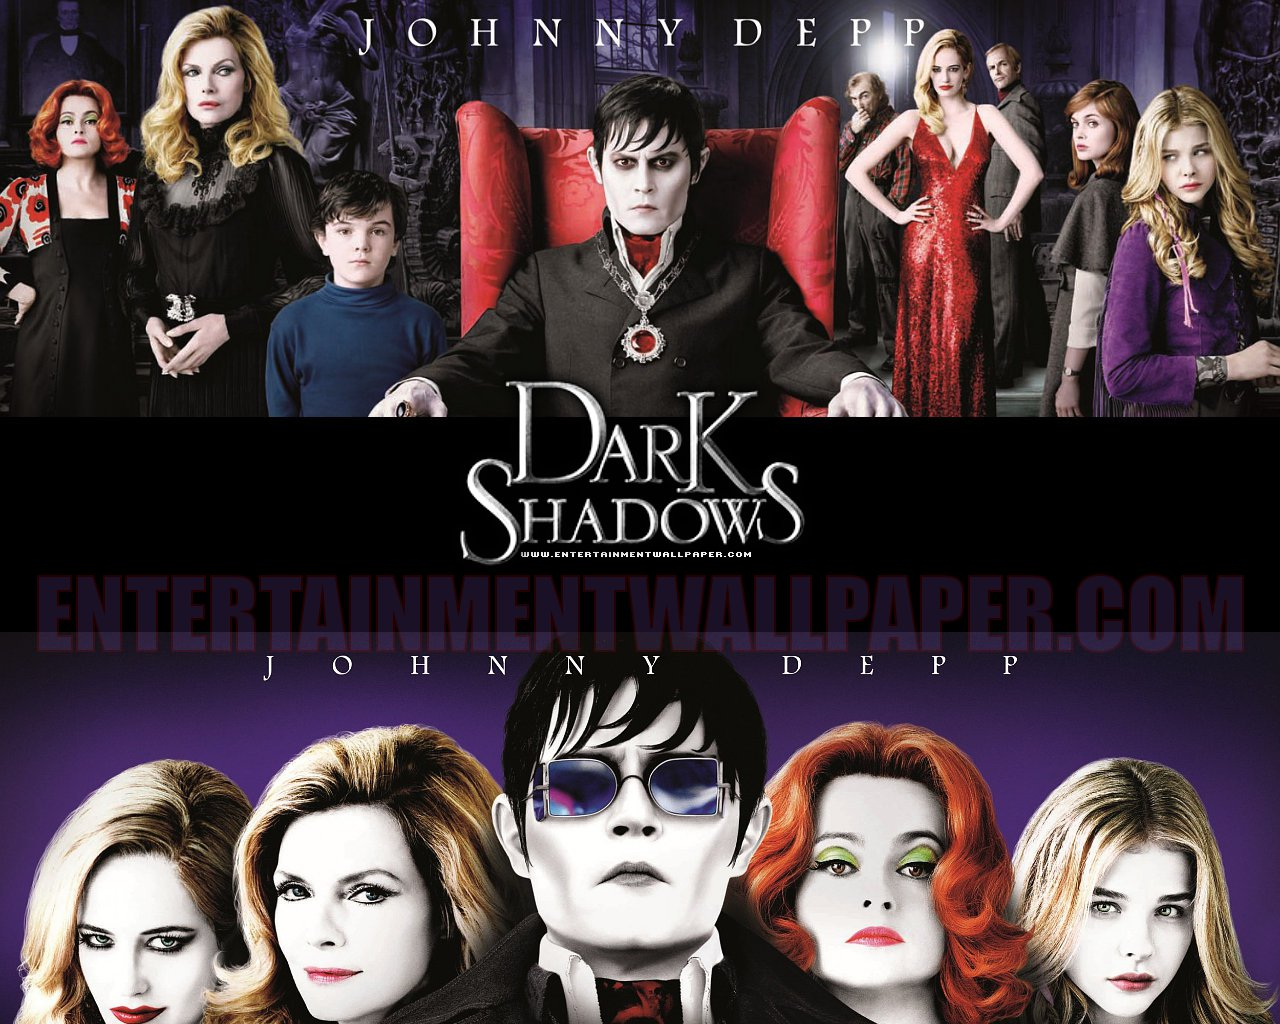 tv show dark shadows wallpaper 10031524 size 1280x1024 more dark 1280x1024